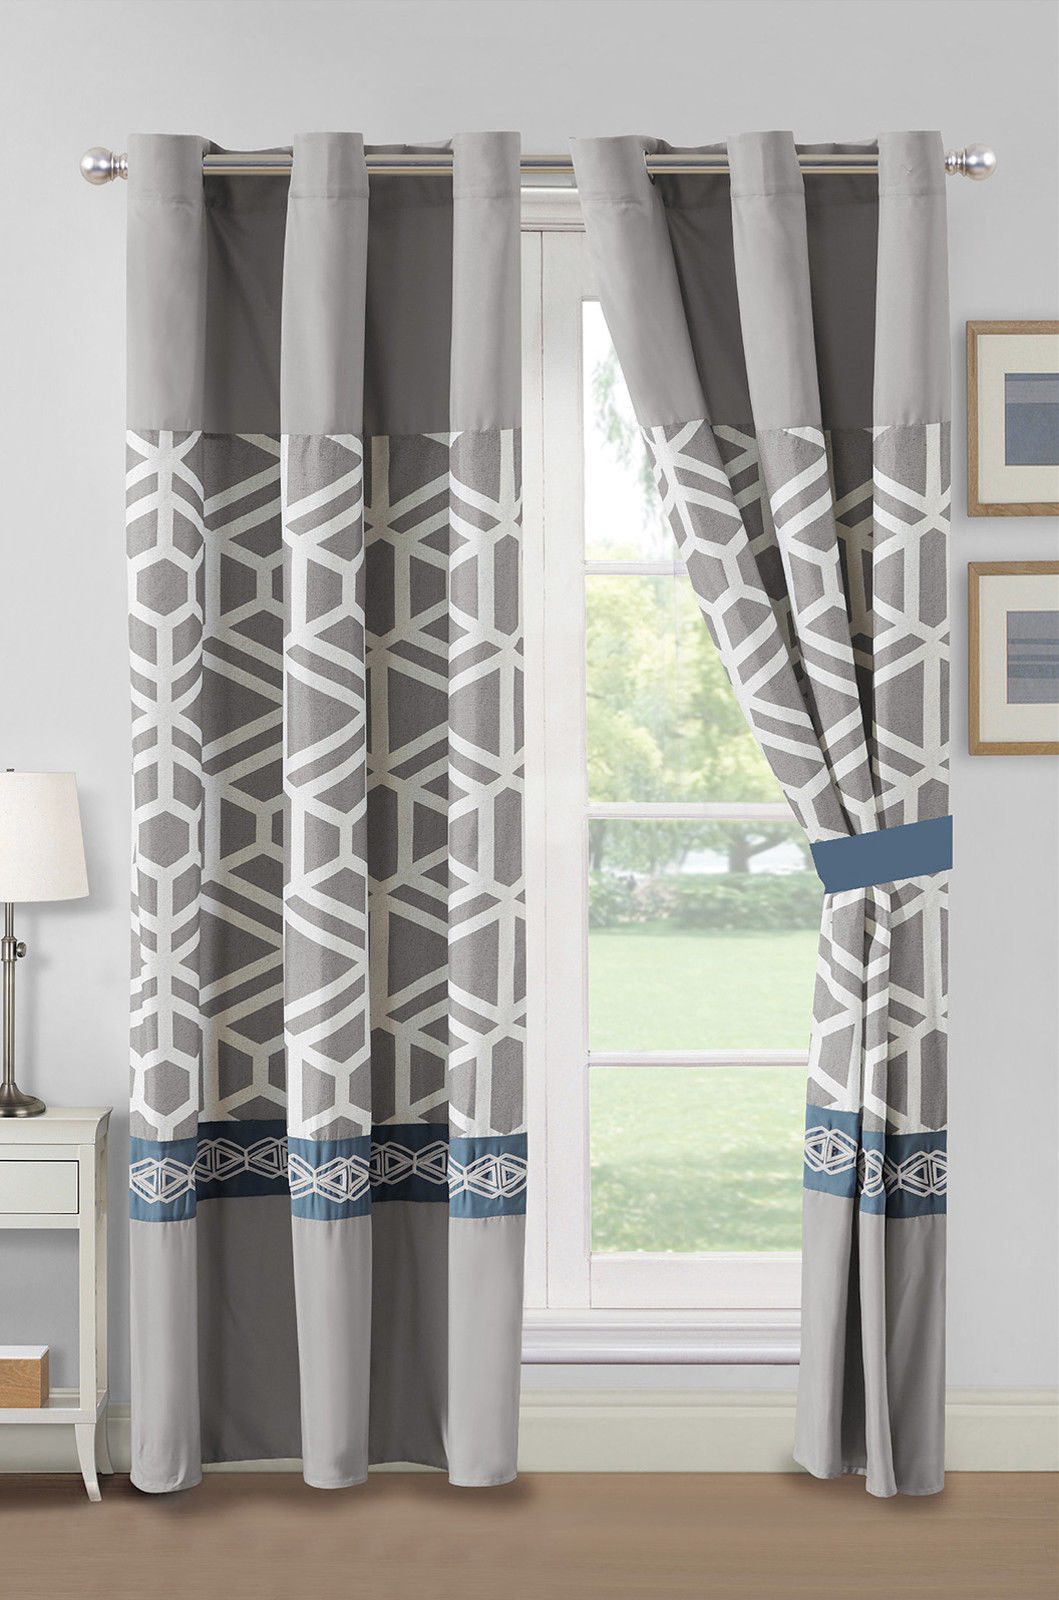 Primary image for 4-Pc Webley Geometric Octagon Lattice Curtain Set Blue Gray Grommet Sheer Liner